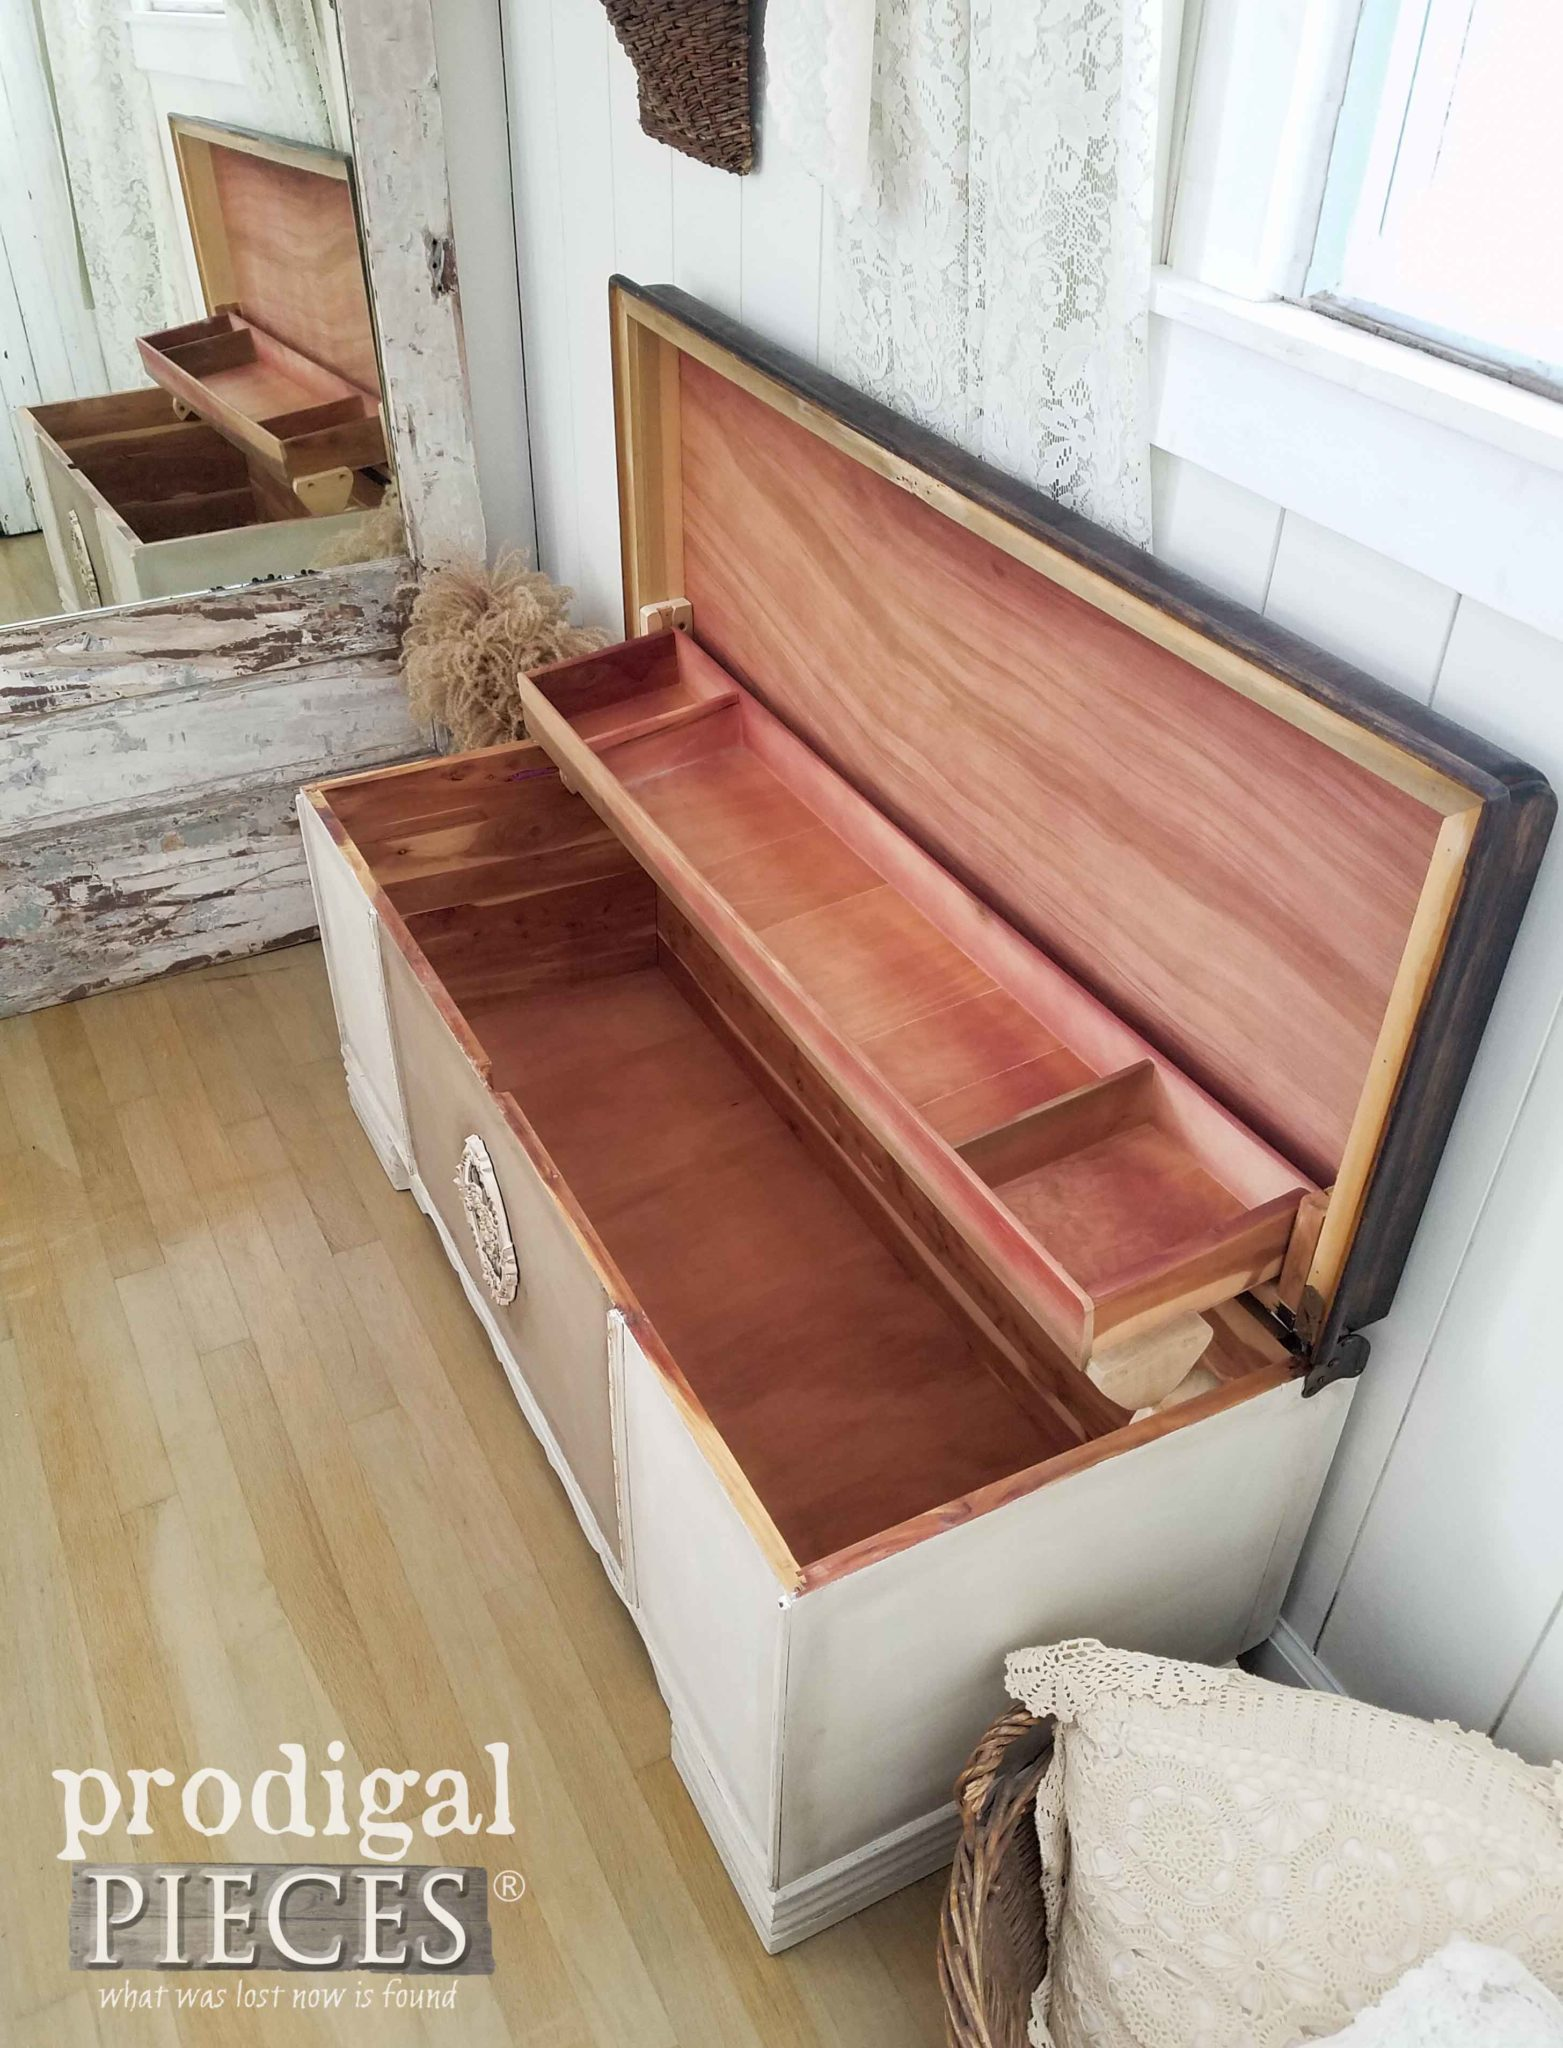 Cedar Lined Hope Chest Made New by Larissa of Prodigal Pieces | prodigalpieces.com